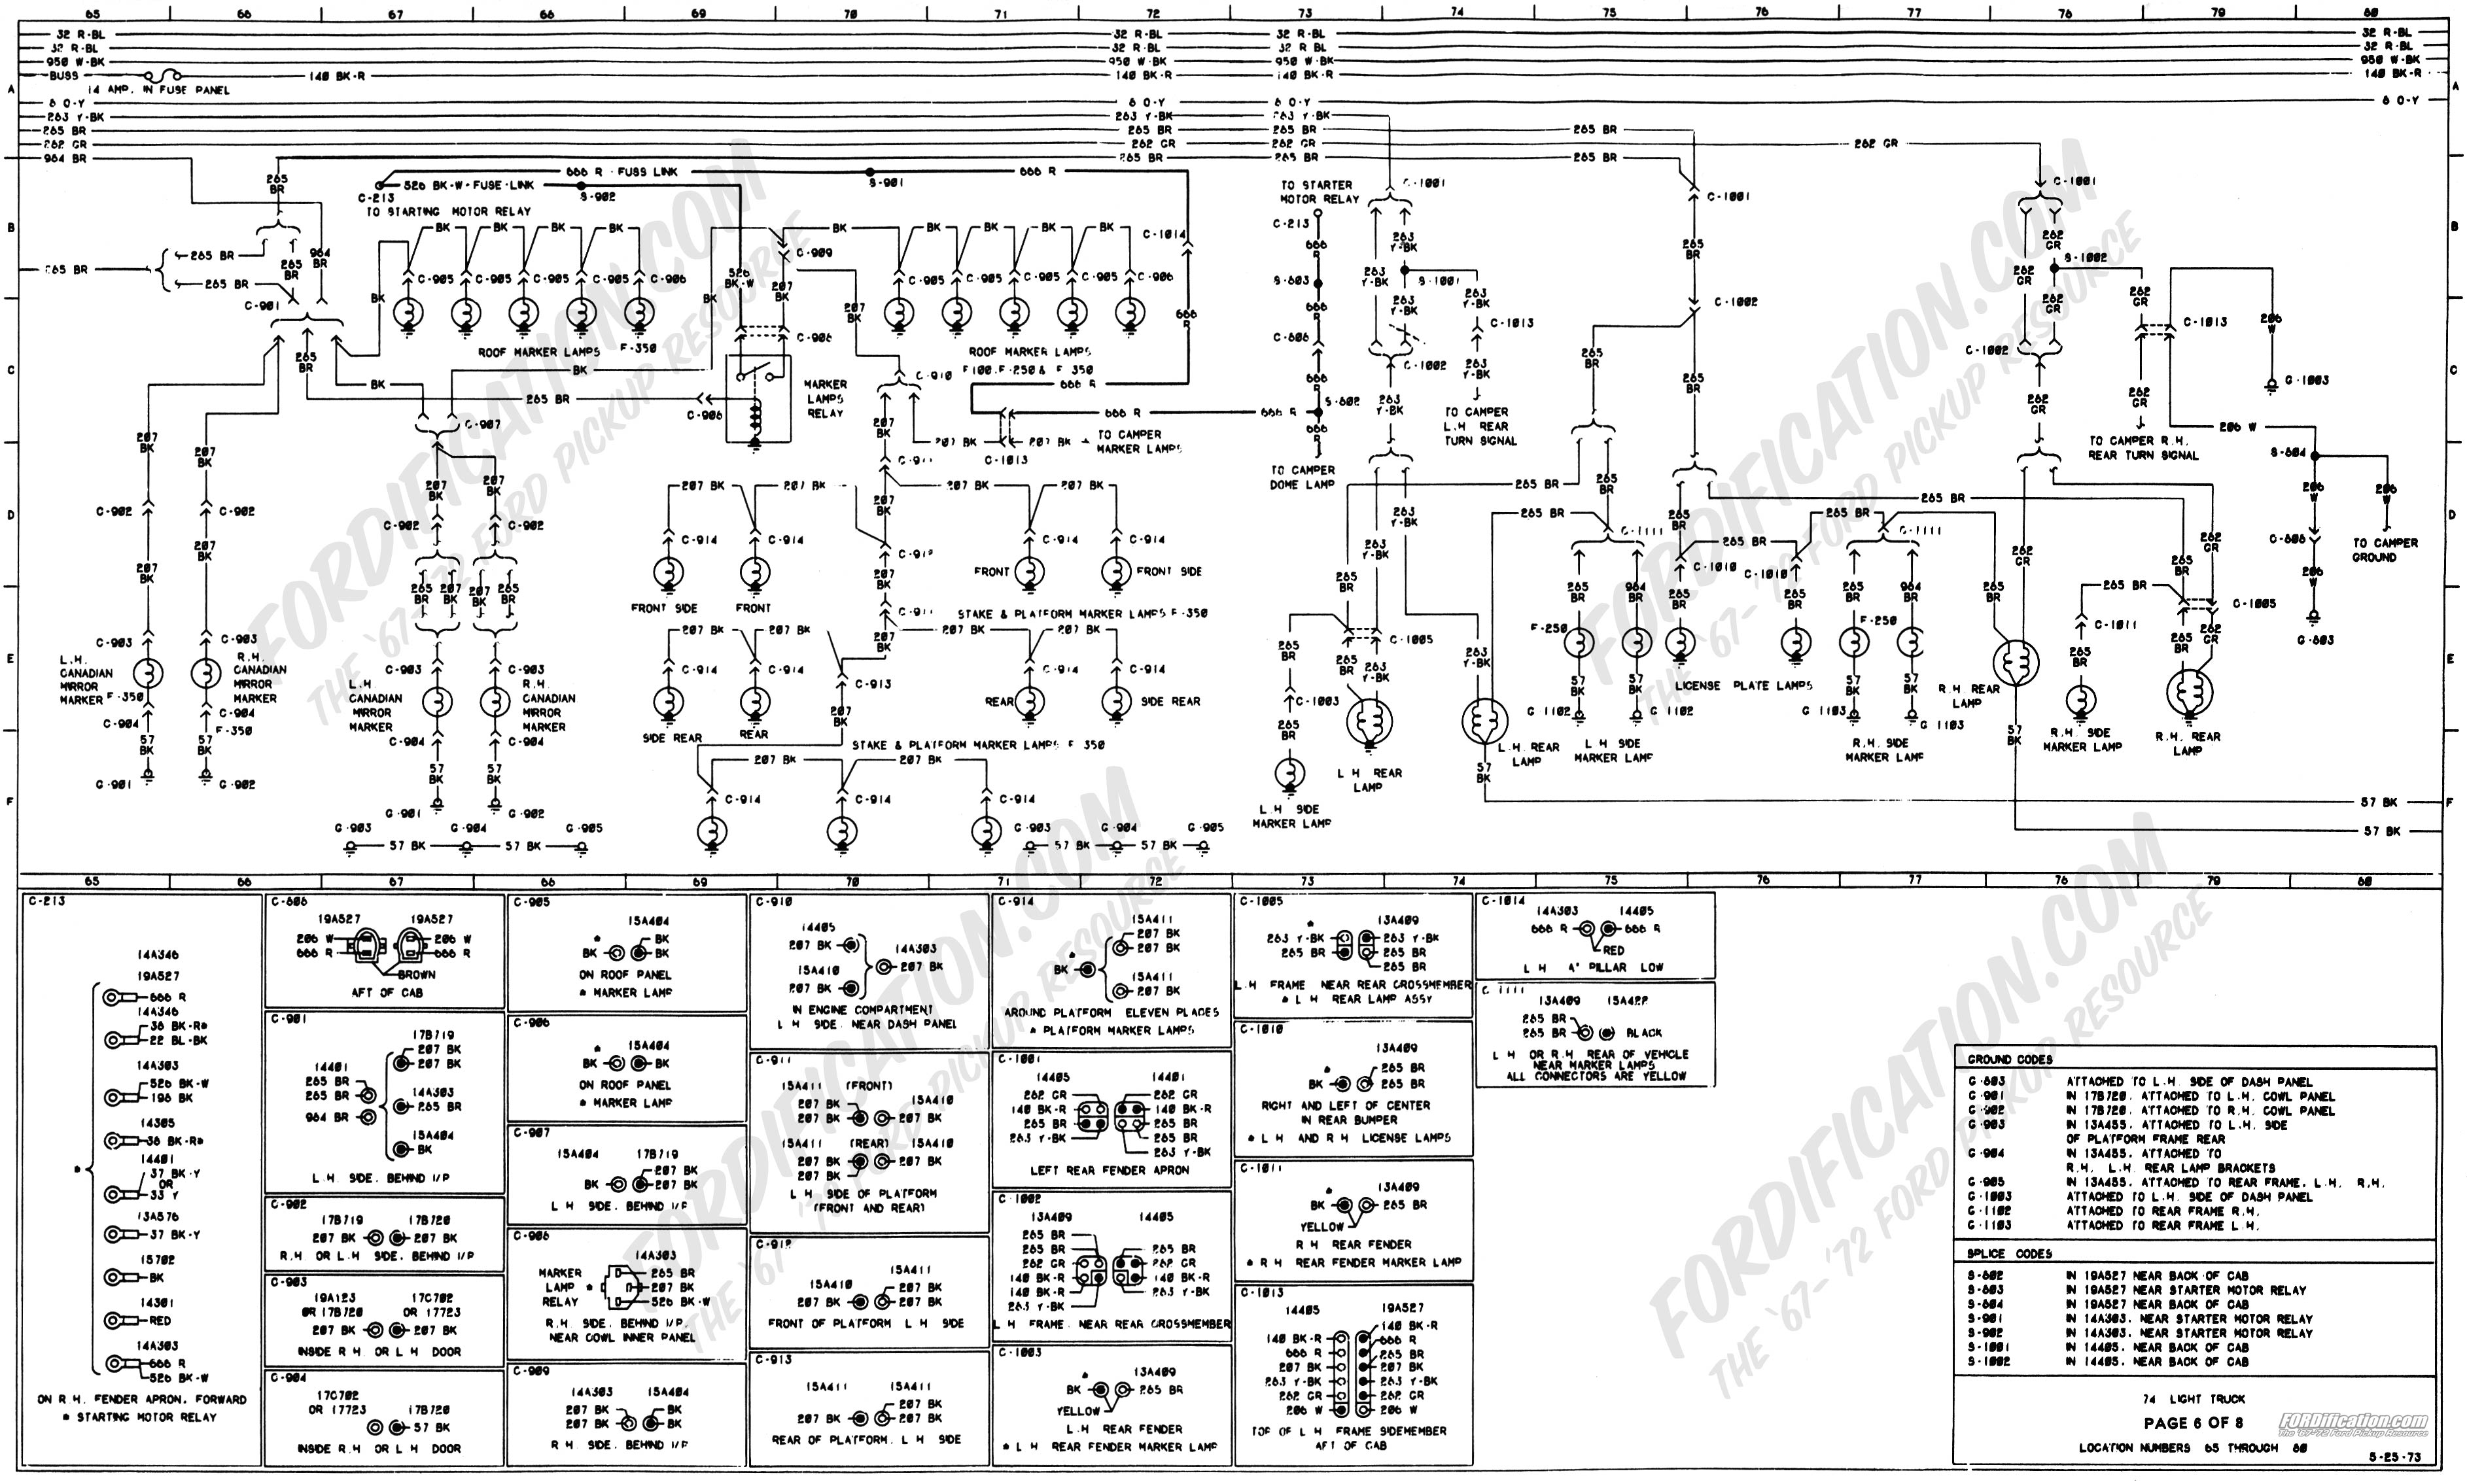 wiring_74master_6of8 1973 ford f250 wiring diagram ford f 150 starter wiring diagram ford f250 wiring diagram online at readyjetset.co